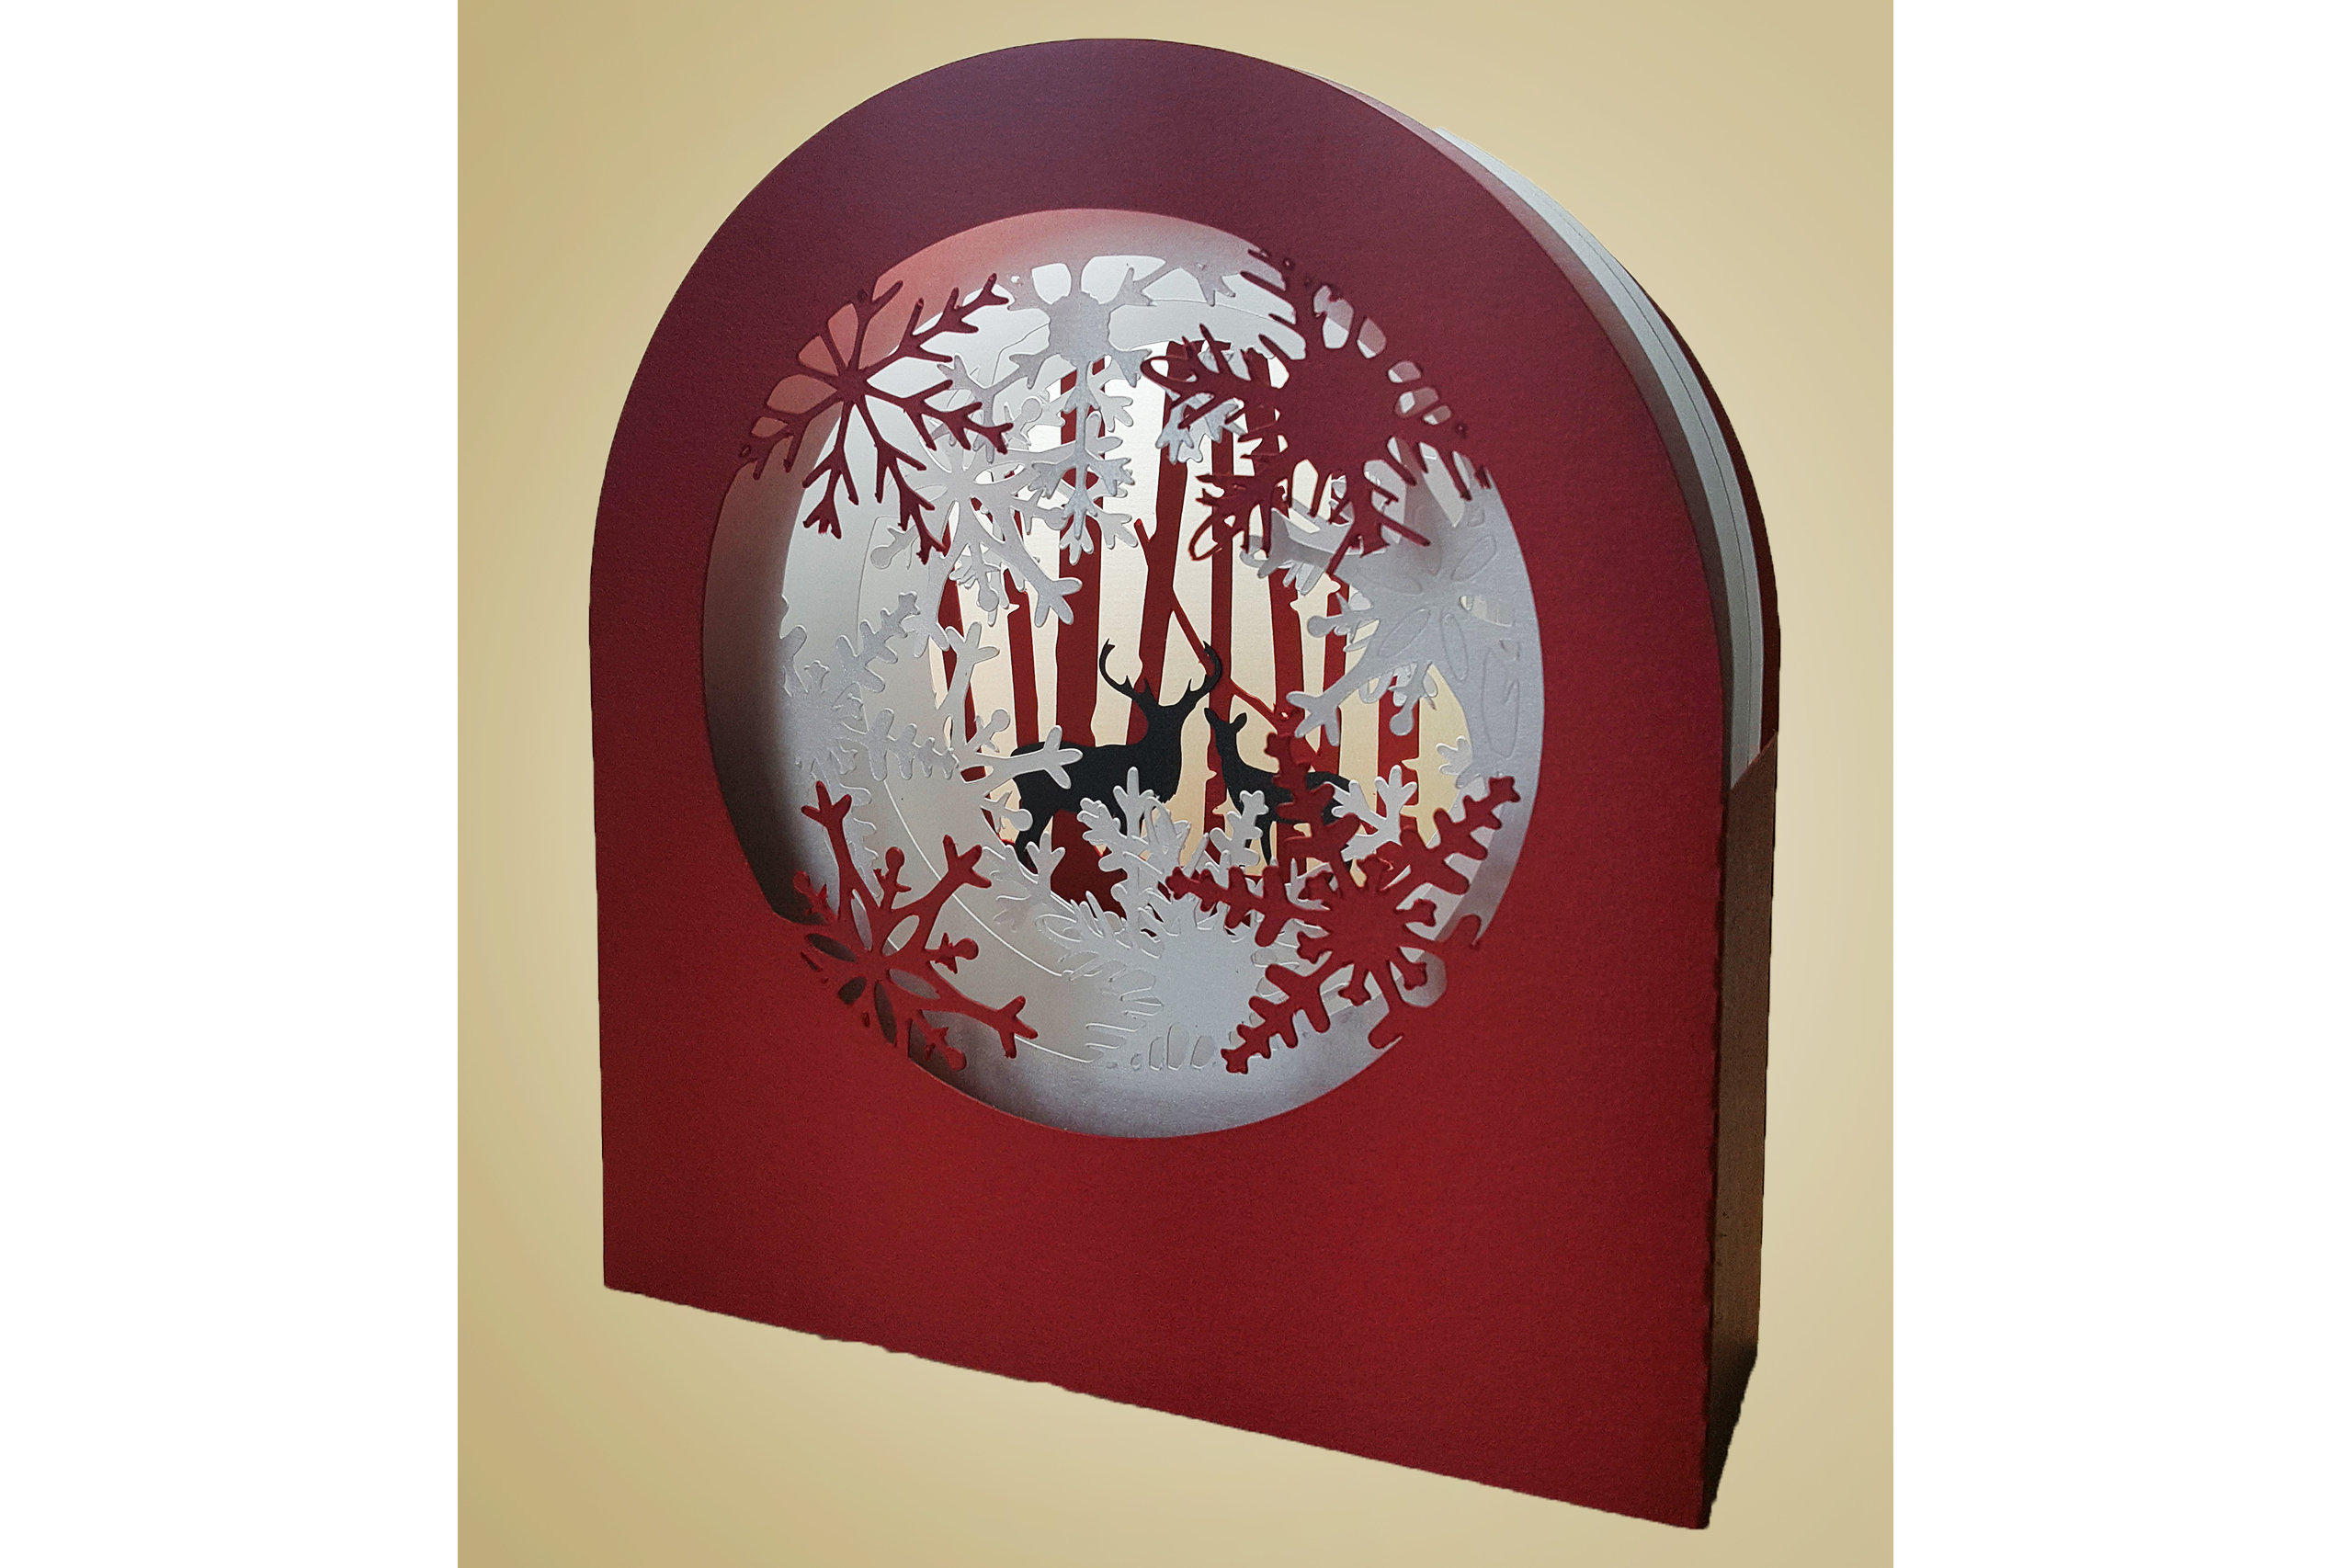 Snowflakes and Deer shadow box card example image 2